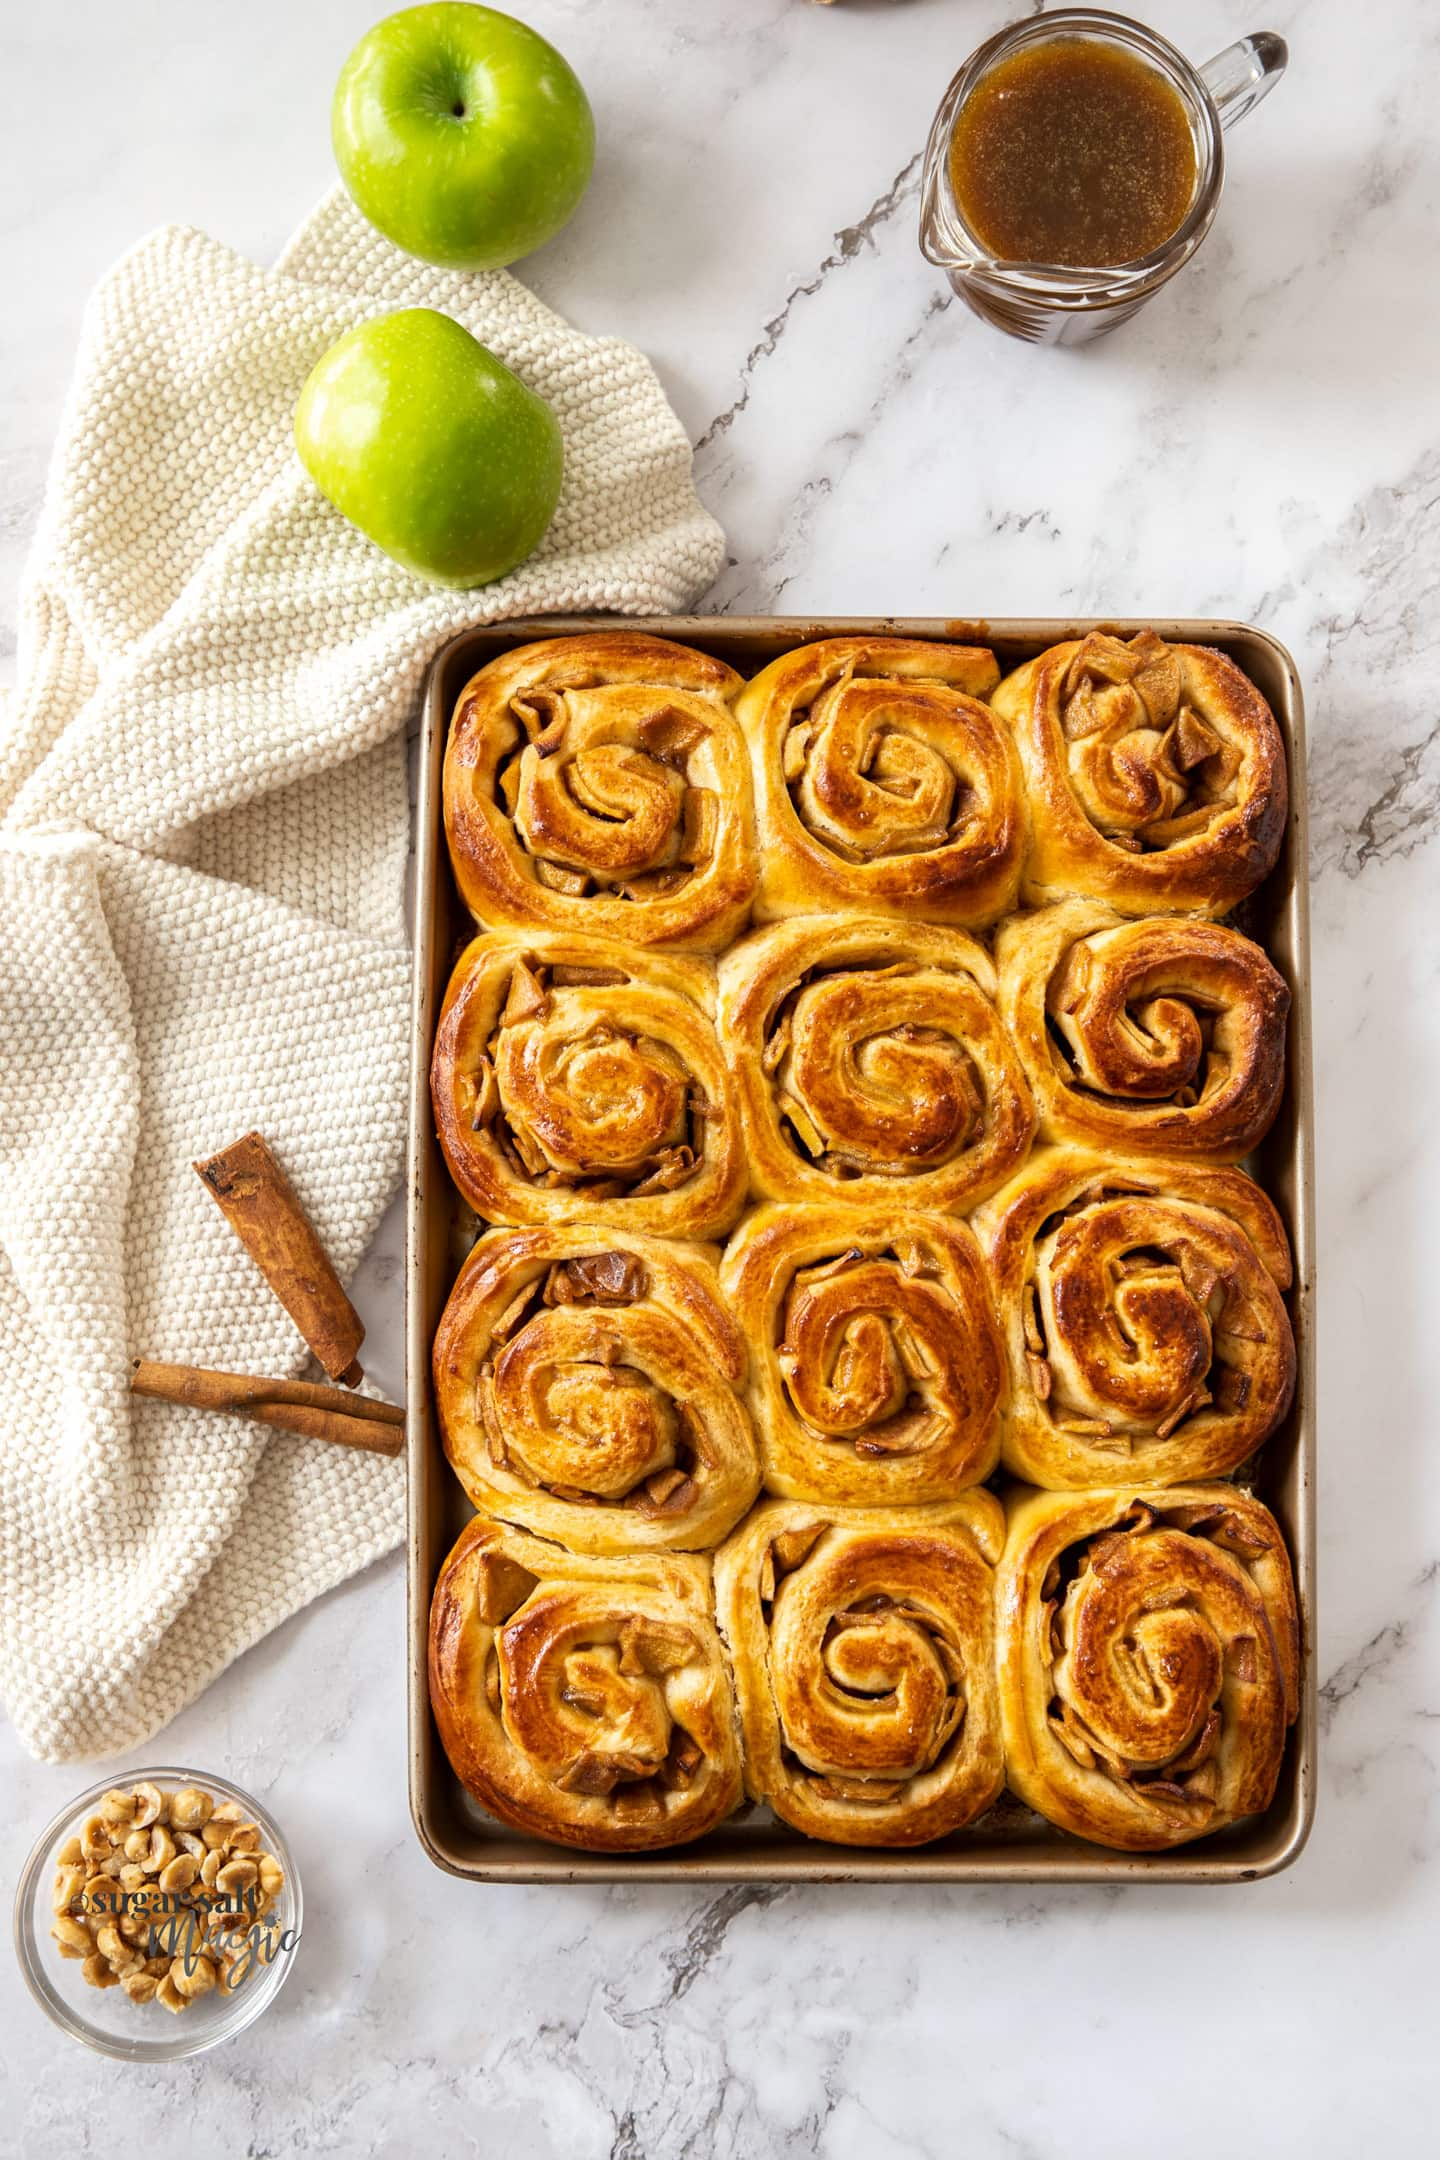 Birdseye view of a tray filled with cinnamon rolls.